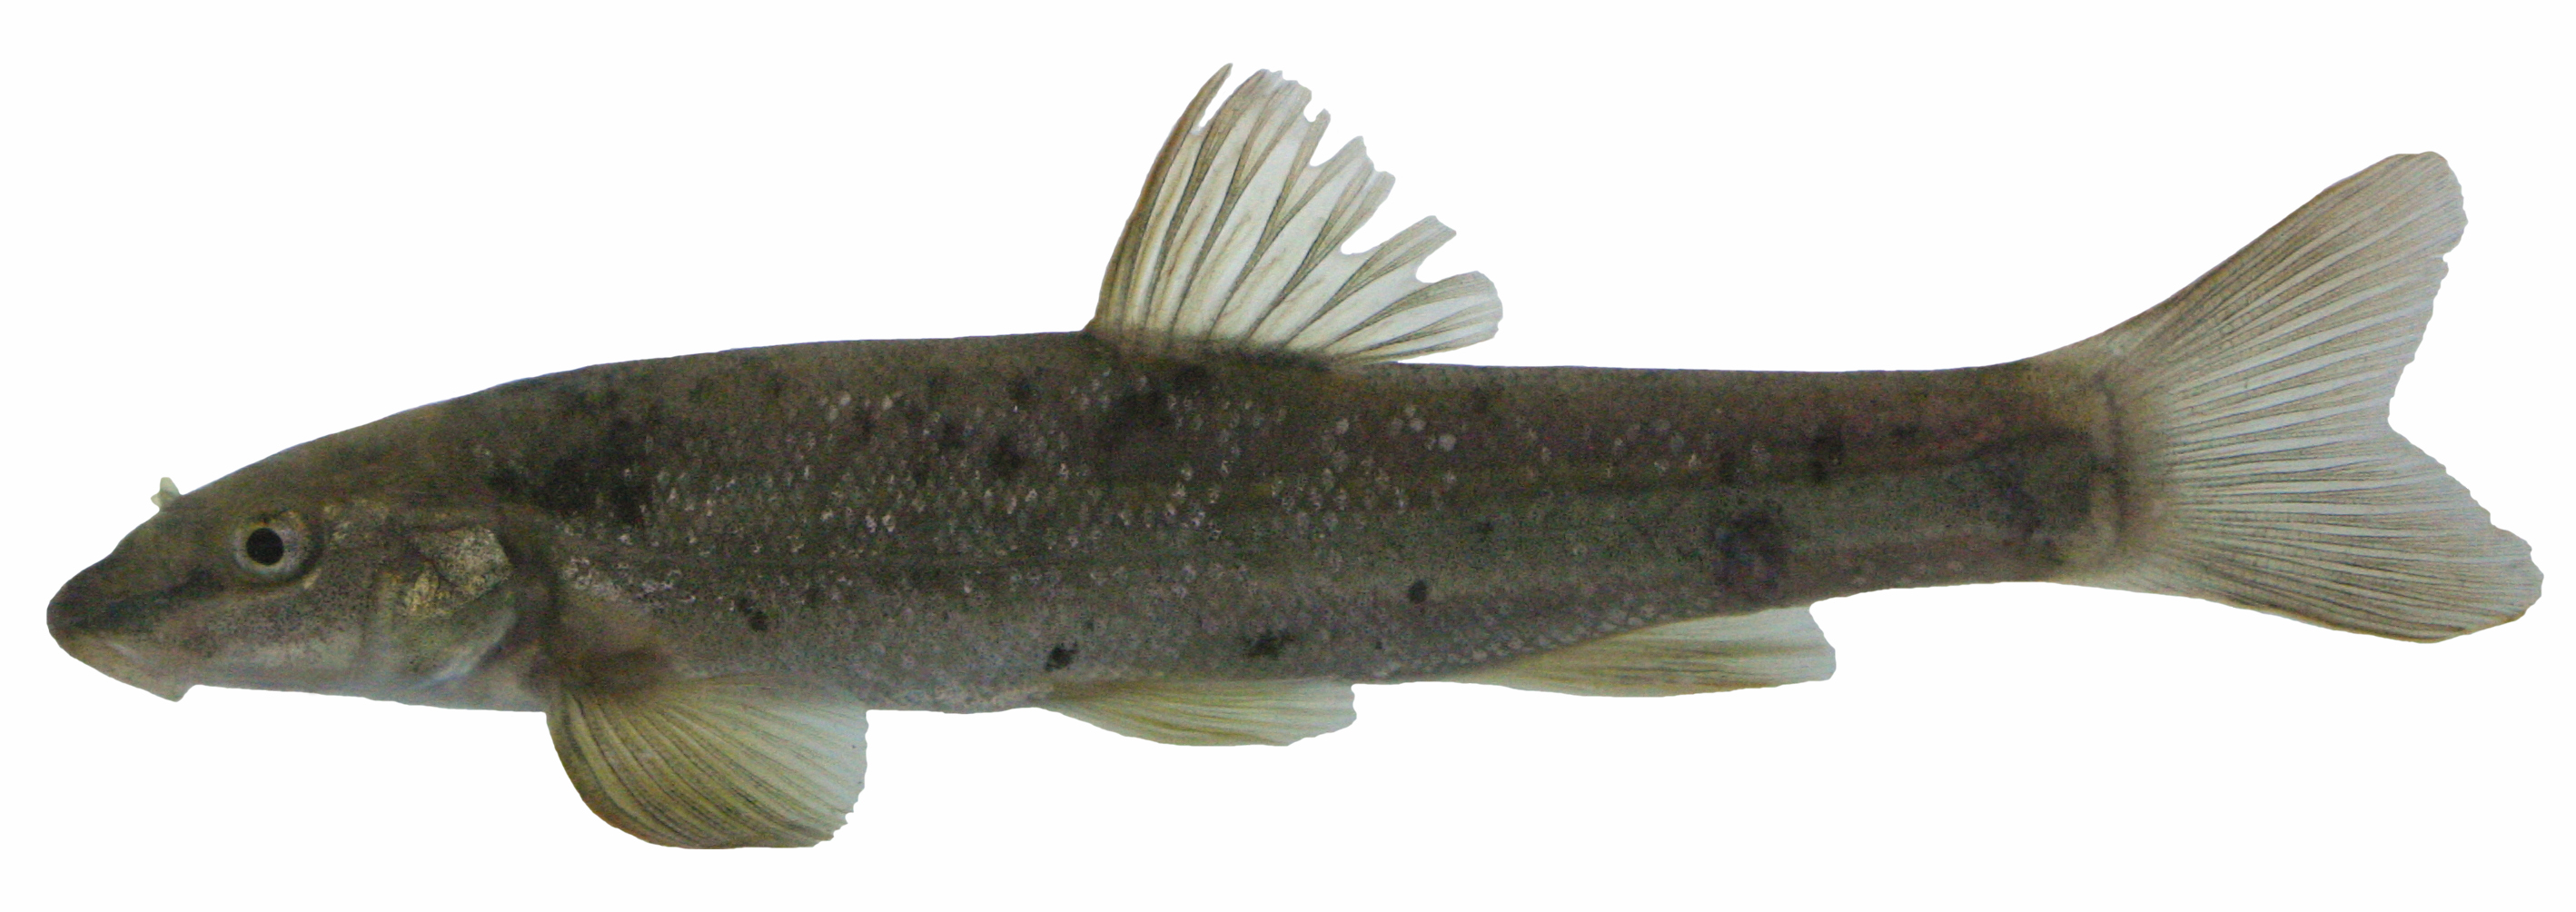 Freshwater fish dace - A Longnose Dace From The Similkameen River And A Formula Gt Car From My Favourite Video Game Perhaps The Comparison Is Tenuous But It Is Always Fun To